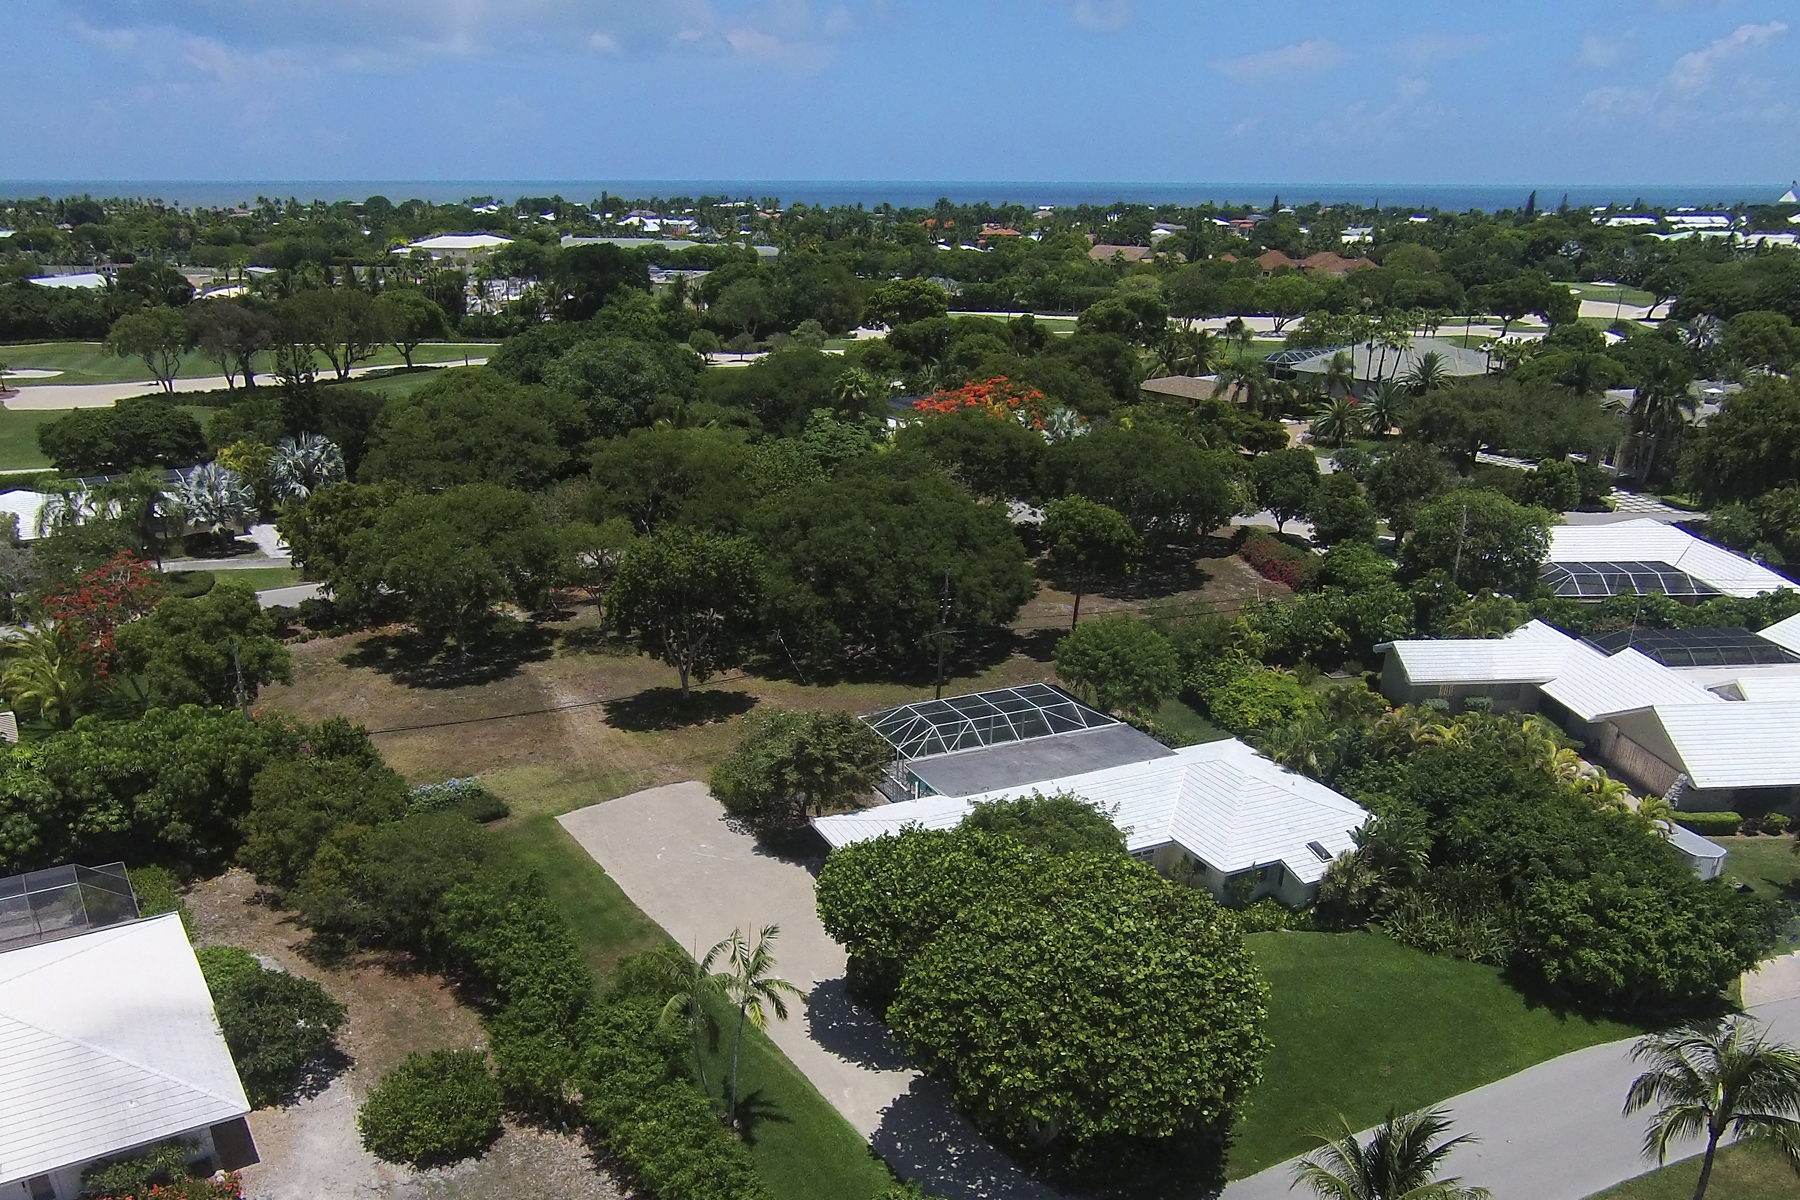 Terreno por un Venta en Vacant Lot at Ocean Reef 13 Country Club Road Key Largo, Florida, 33037 Estados Unidos